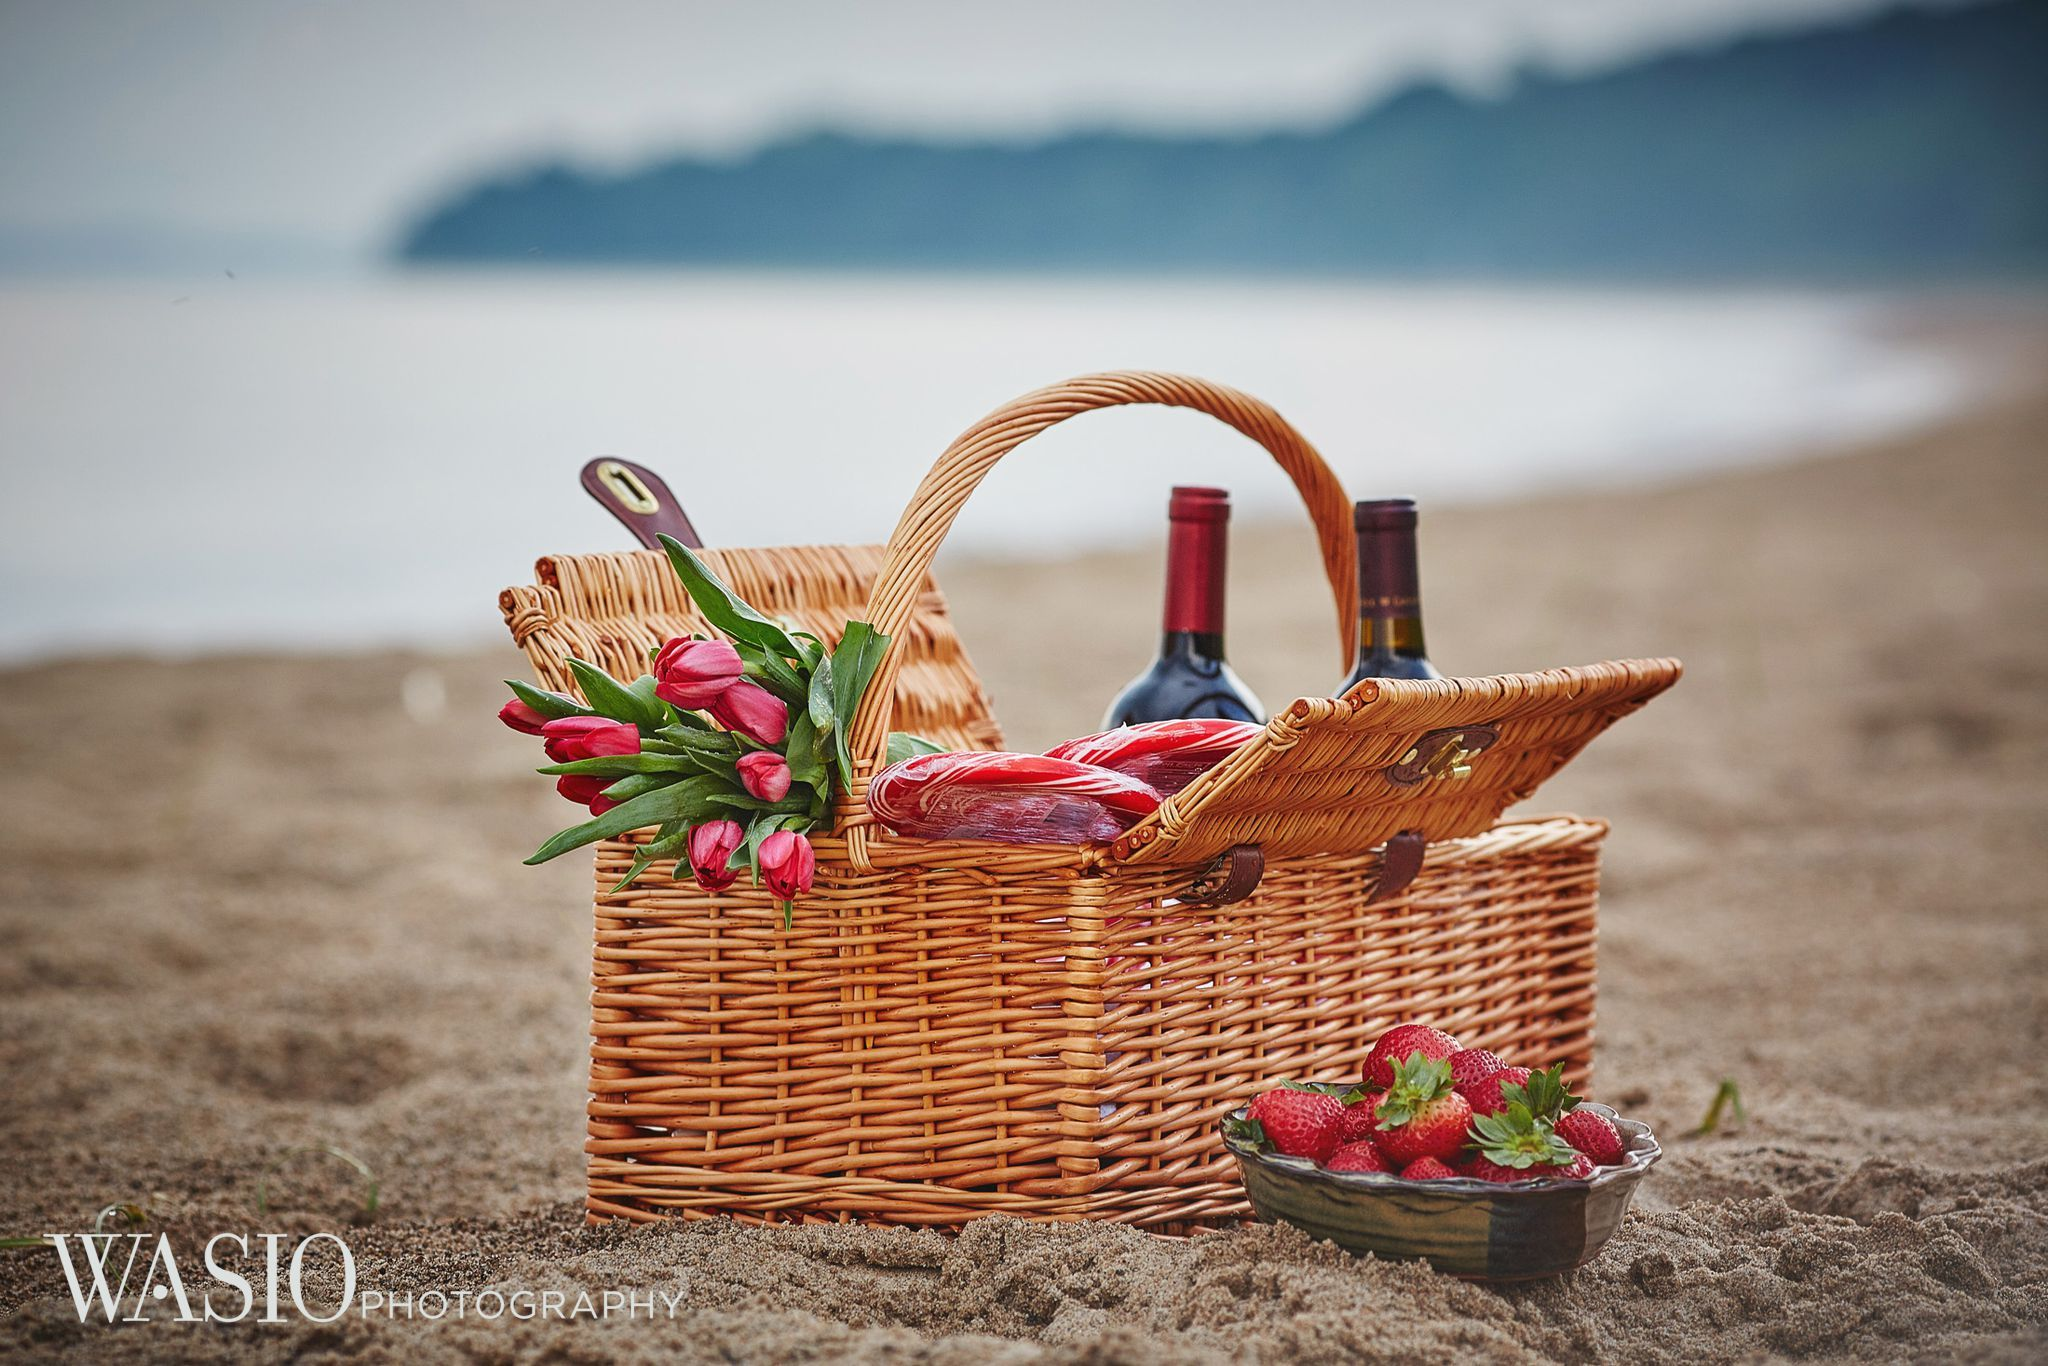 Engagement session photography ideas, beach, picnic basket